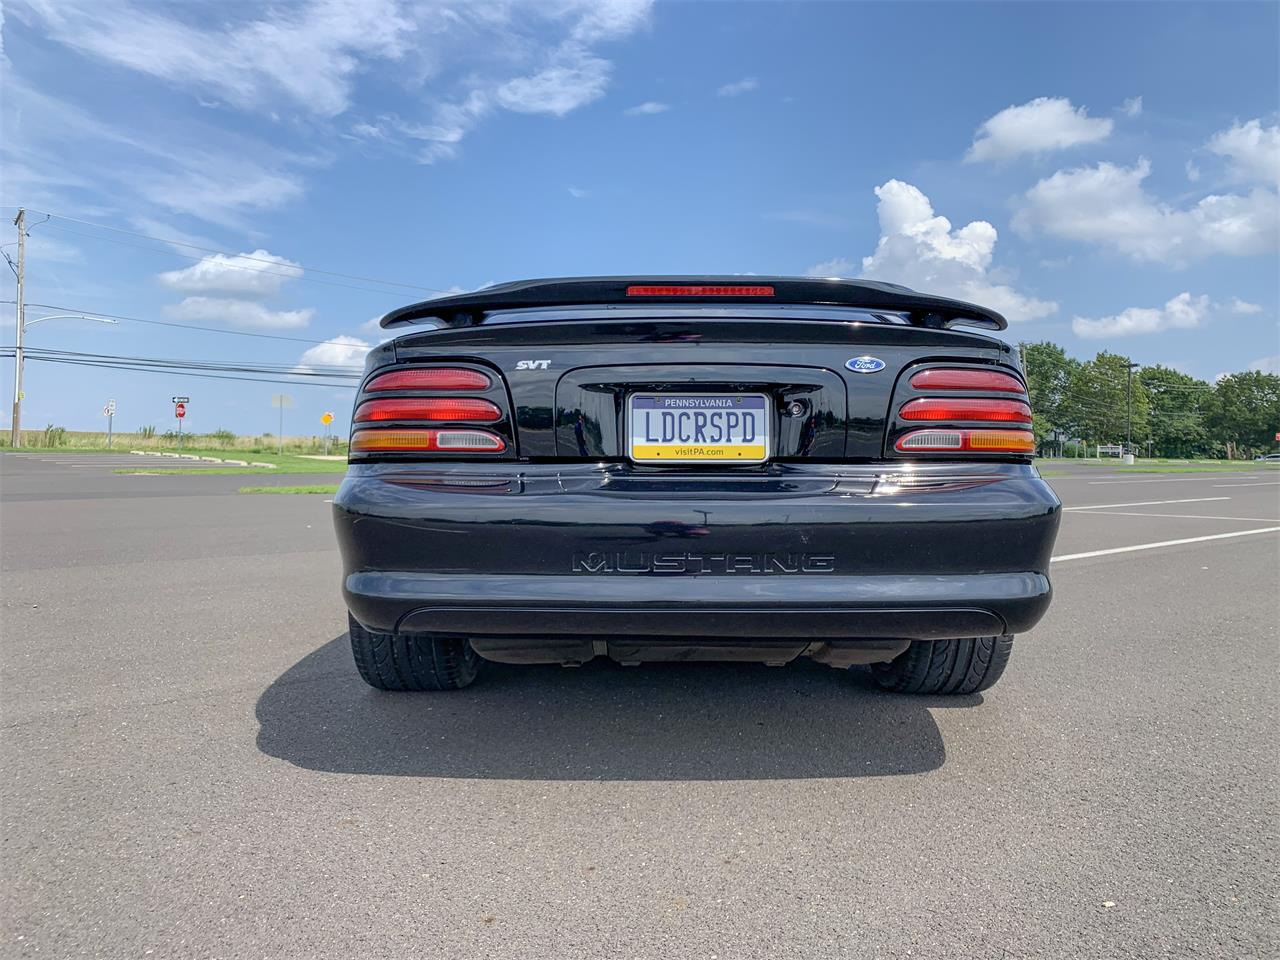 1994 Ford Mustang Cobra (CC-1300844) for sale in Glenolden, Pennsylvania